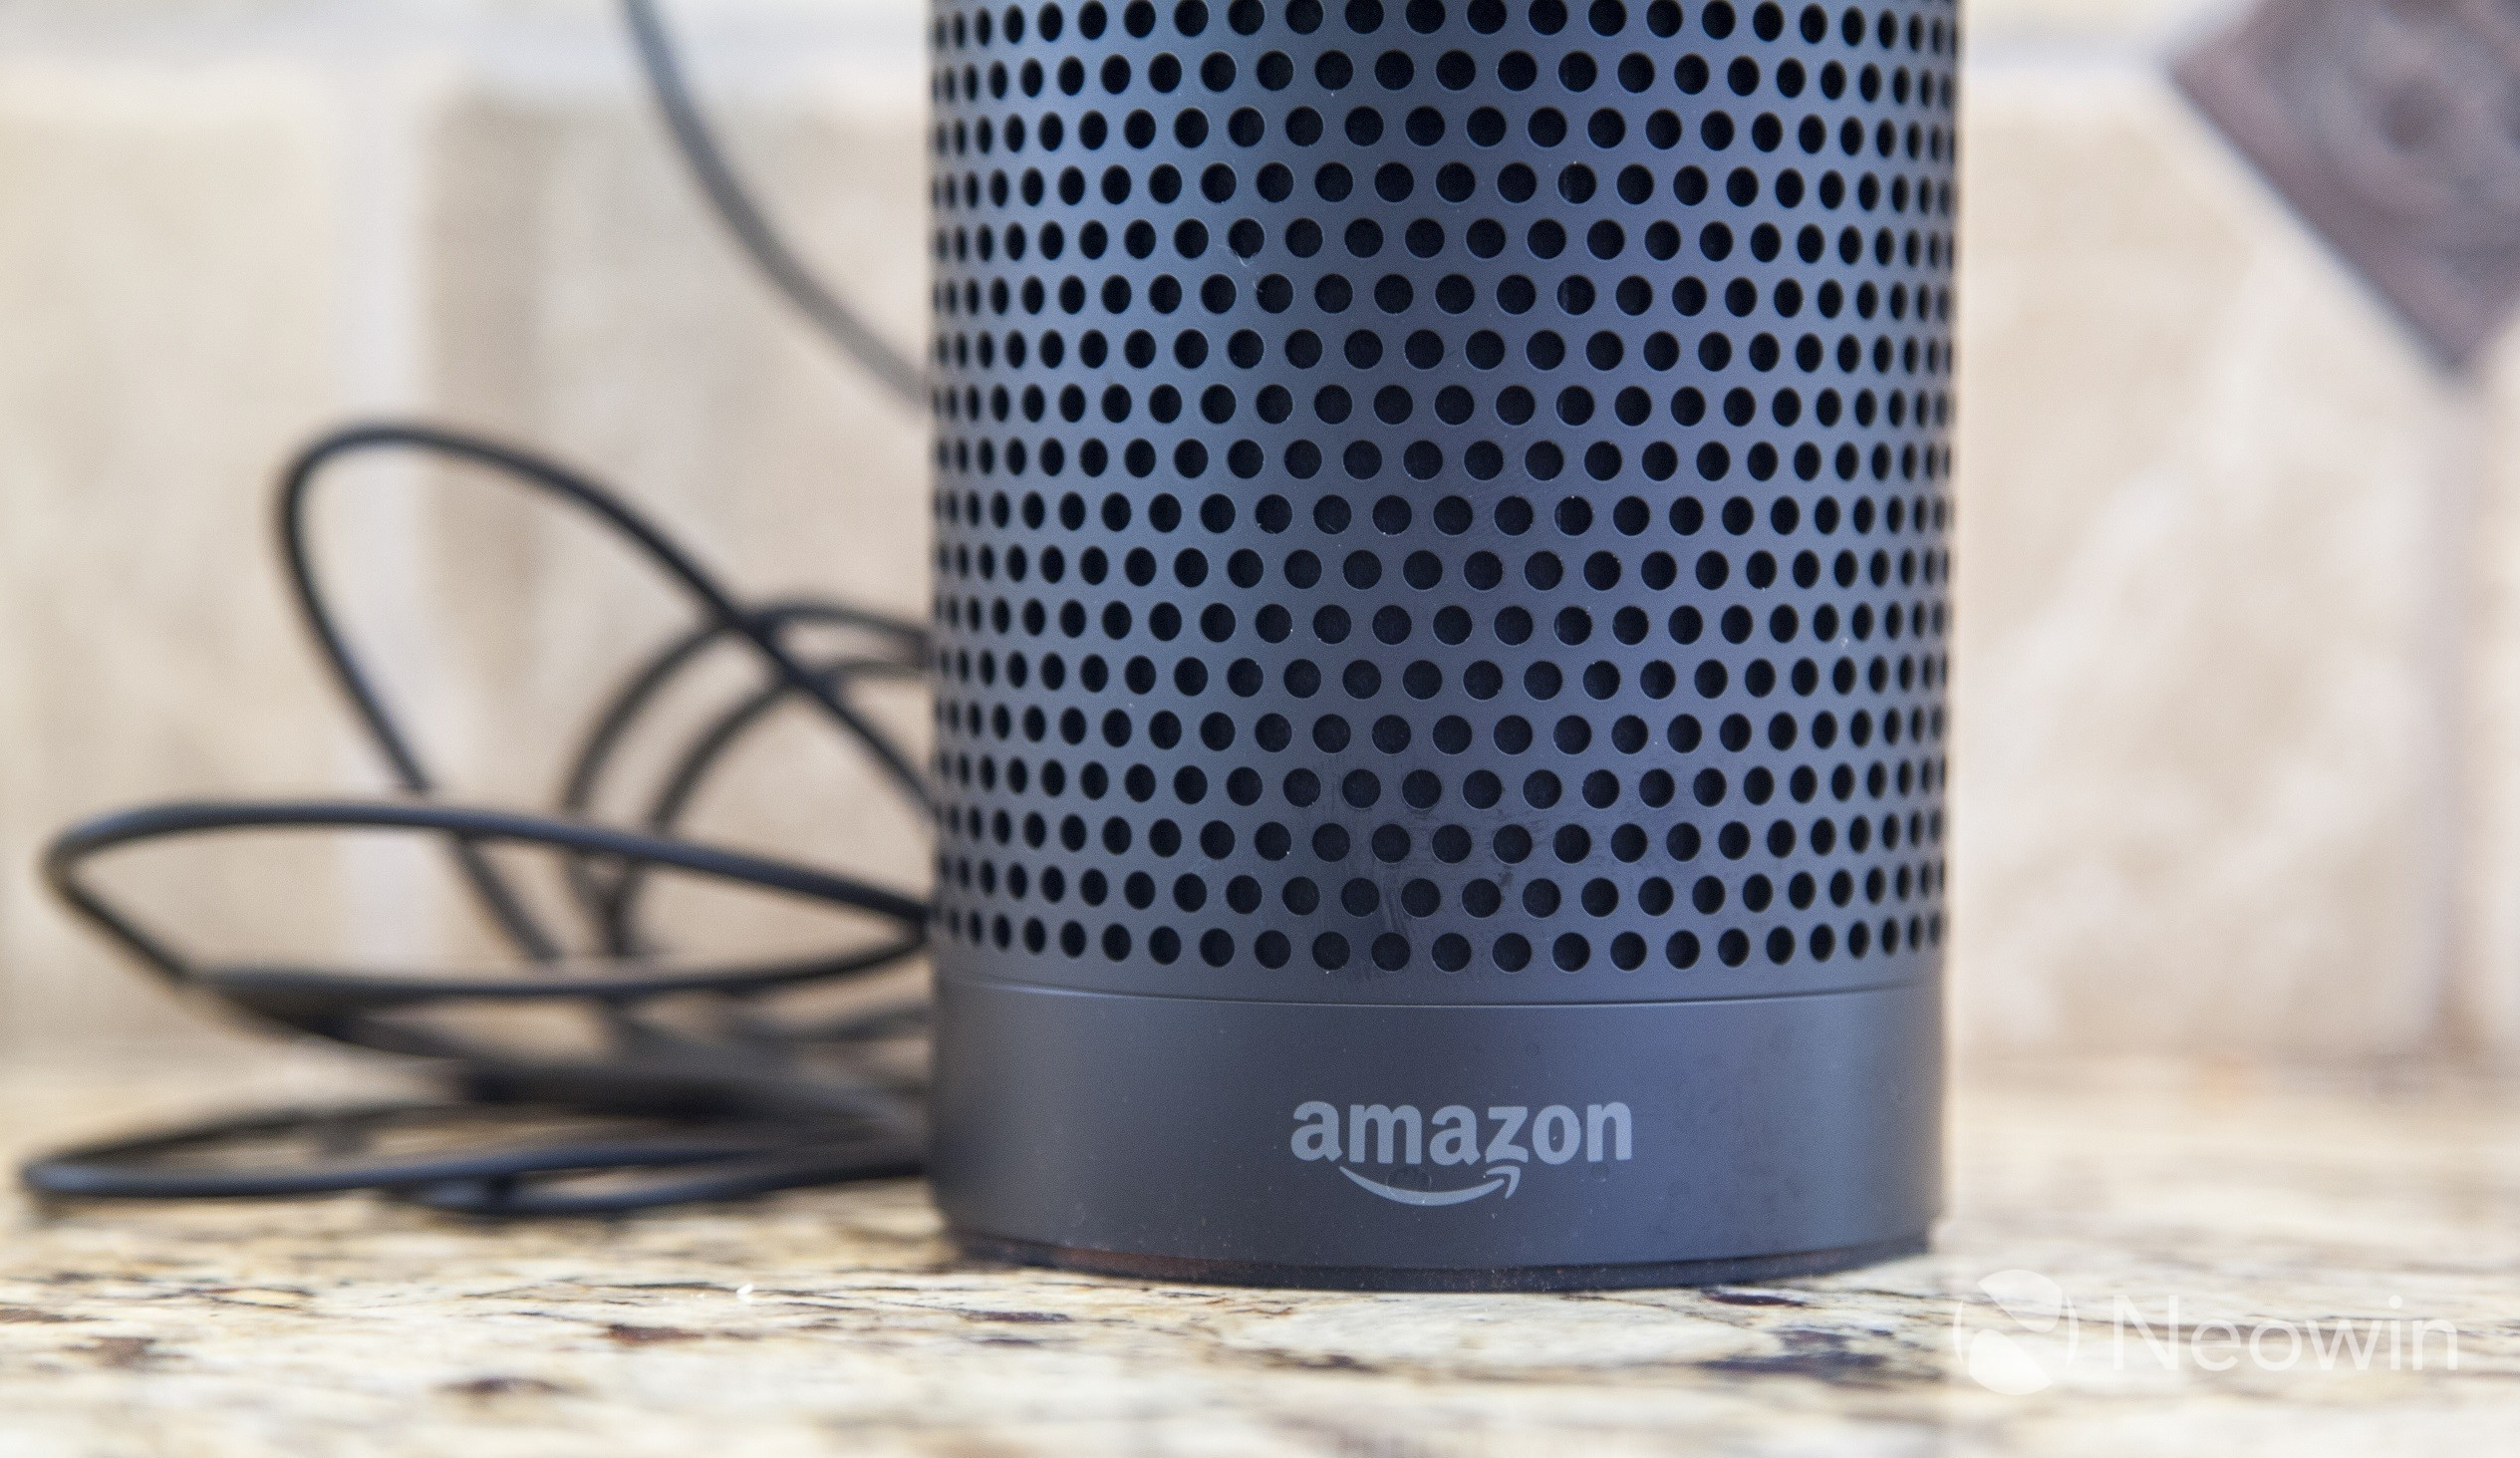 Amazon is reportedly launching an Alexa-enabled subwoofer, microwave, and much more